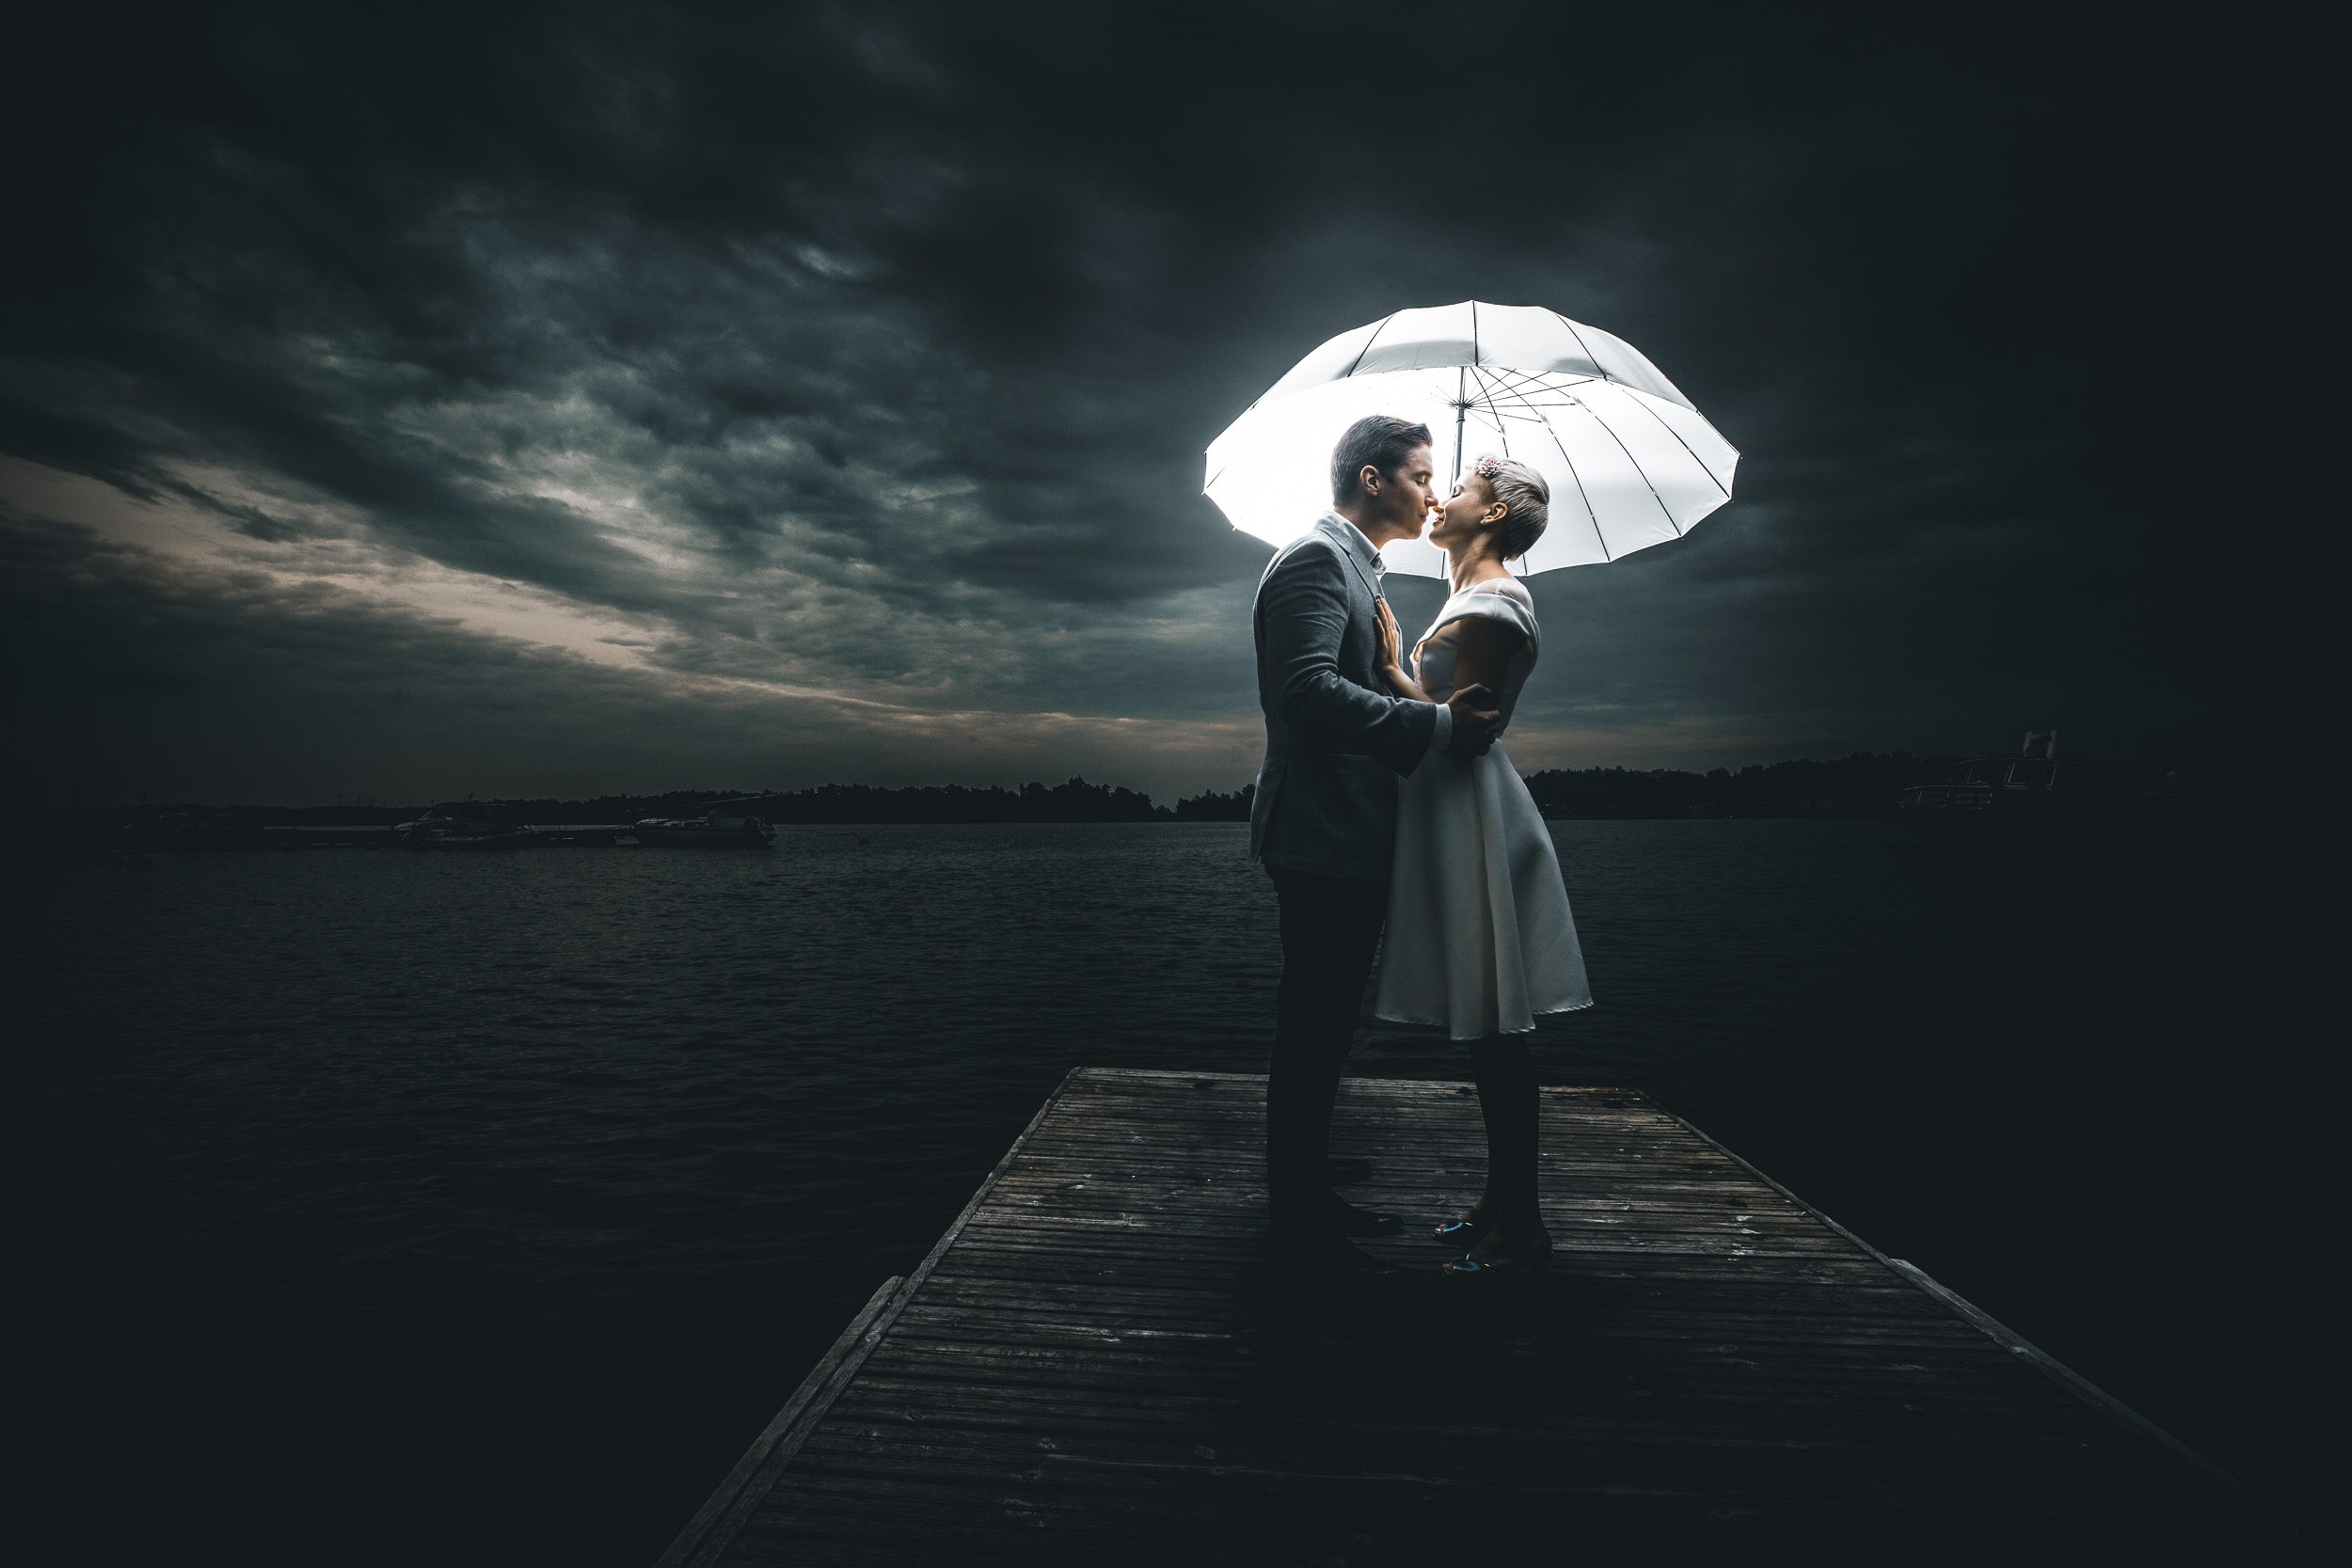 This is the final version of Aino and Joonas wedding photo